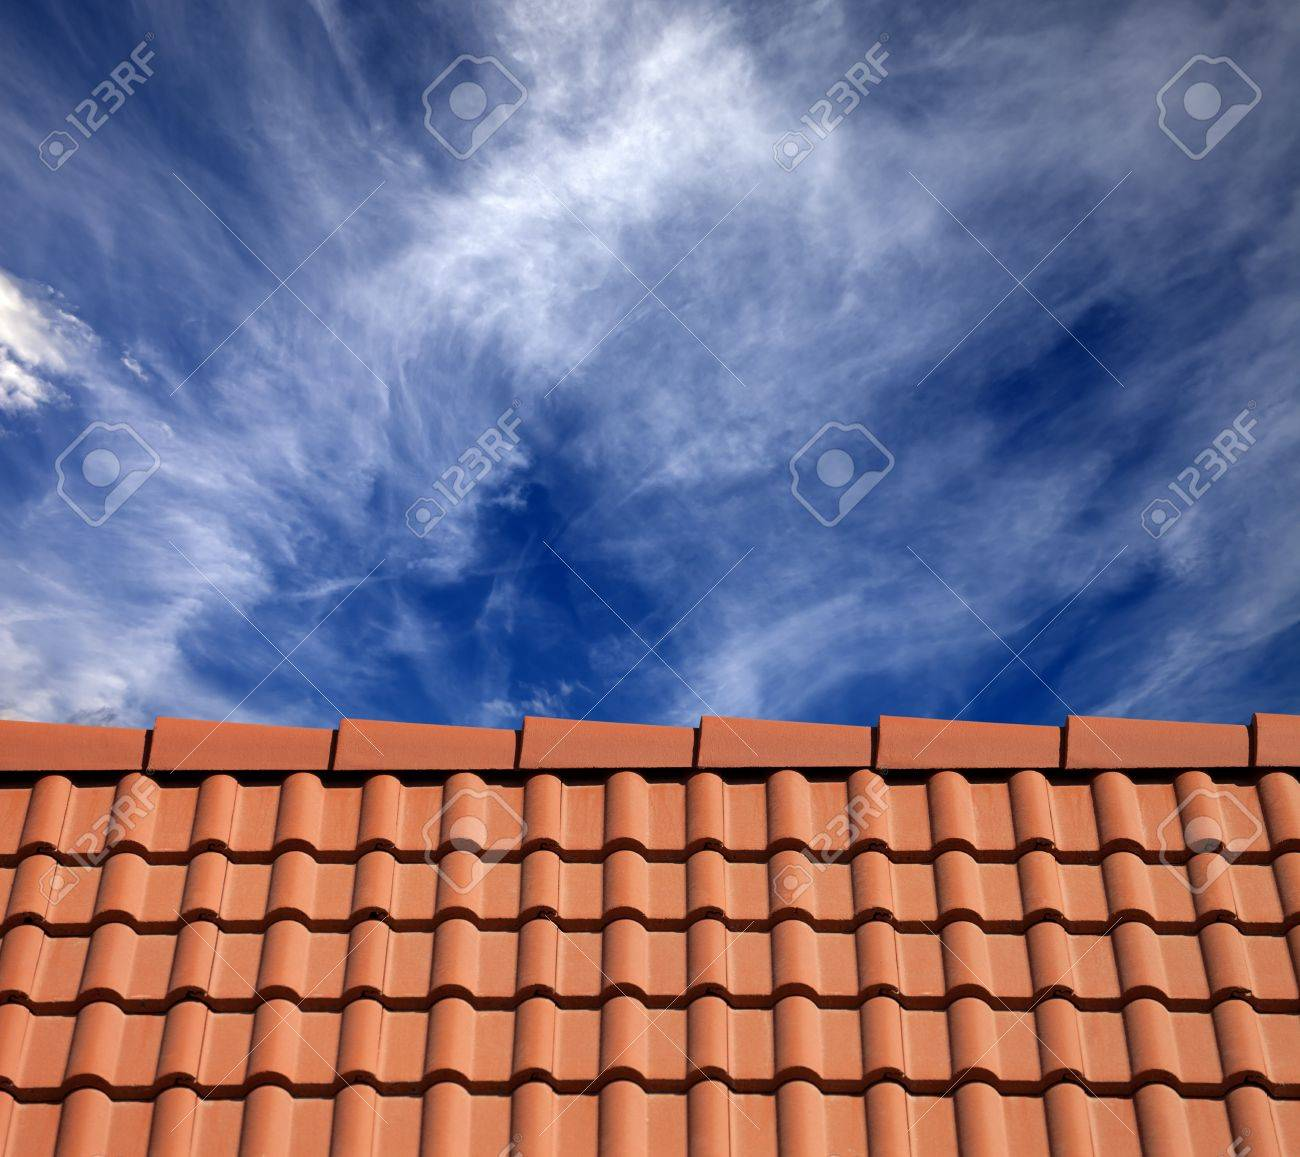 Roof tiles and sky with clouds at sun day Stock Photo - 25113318